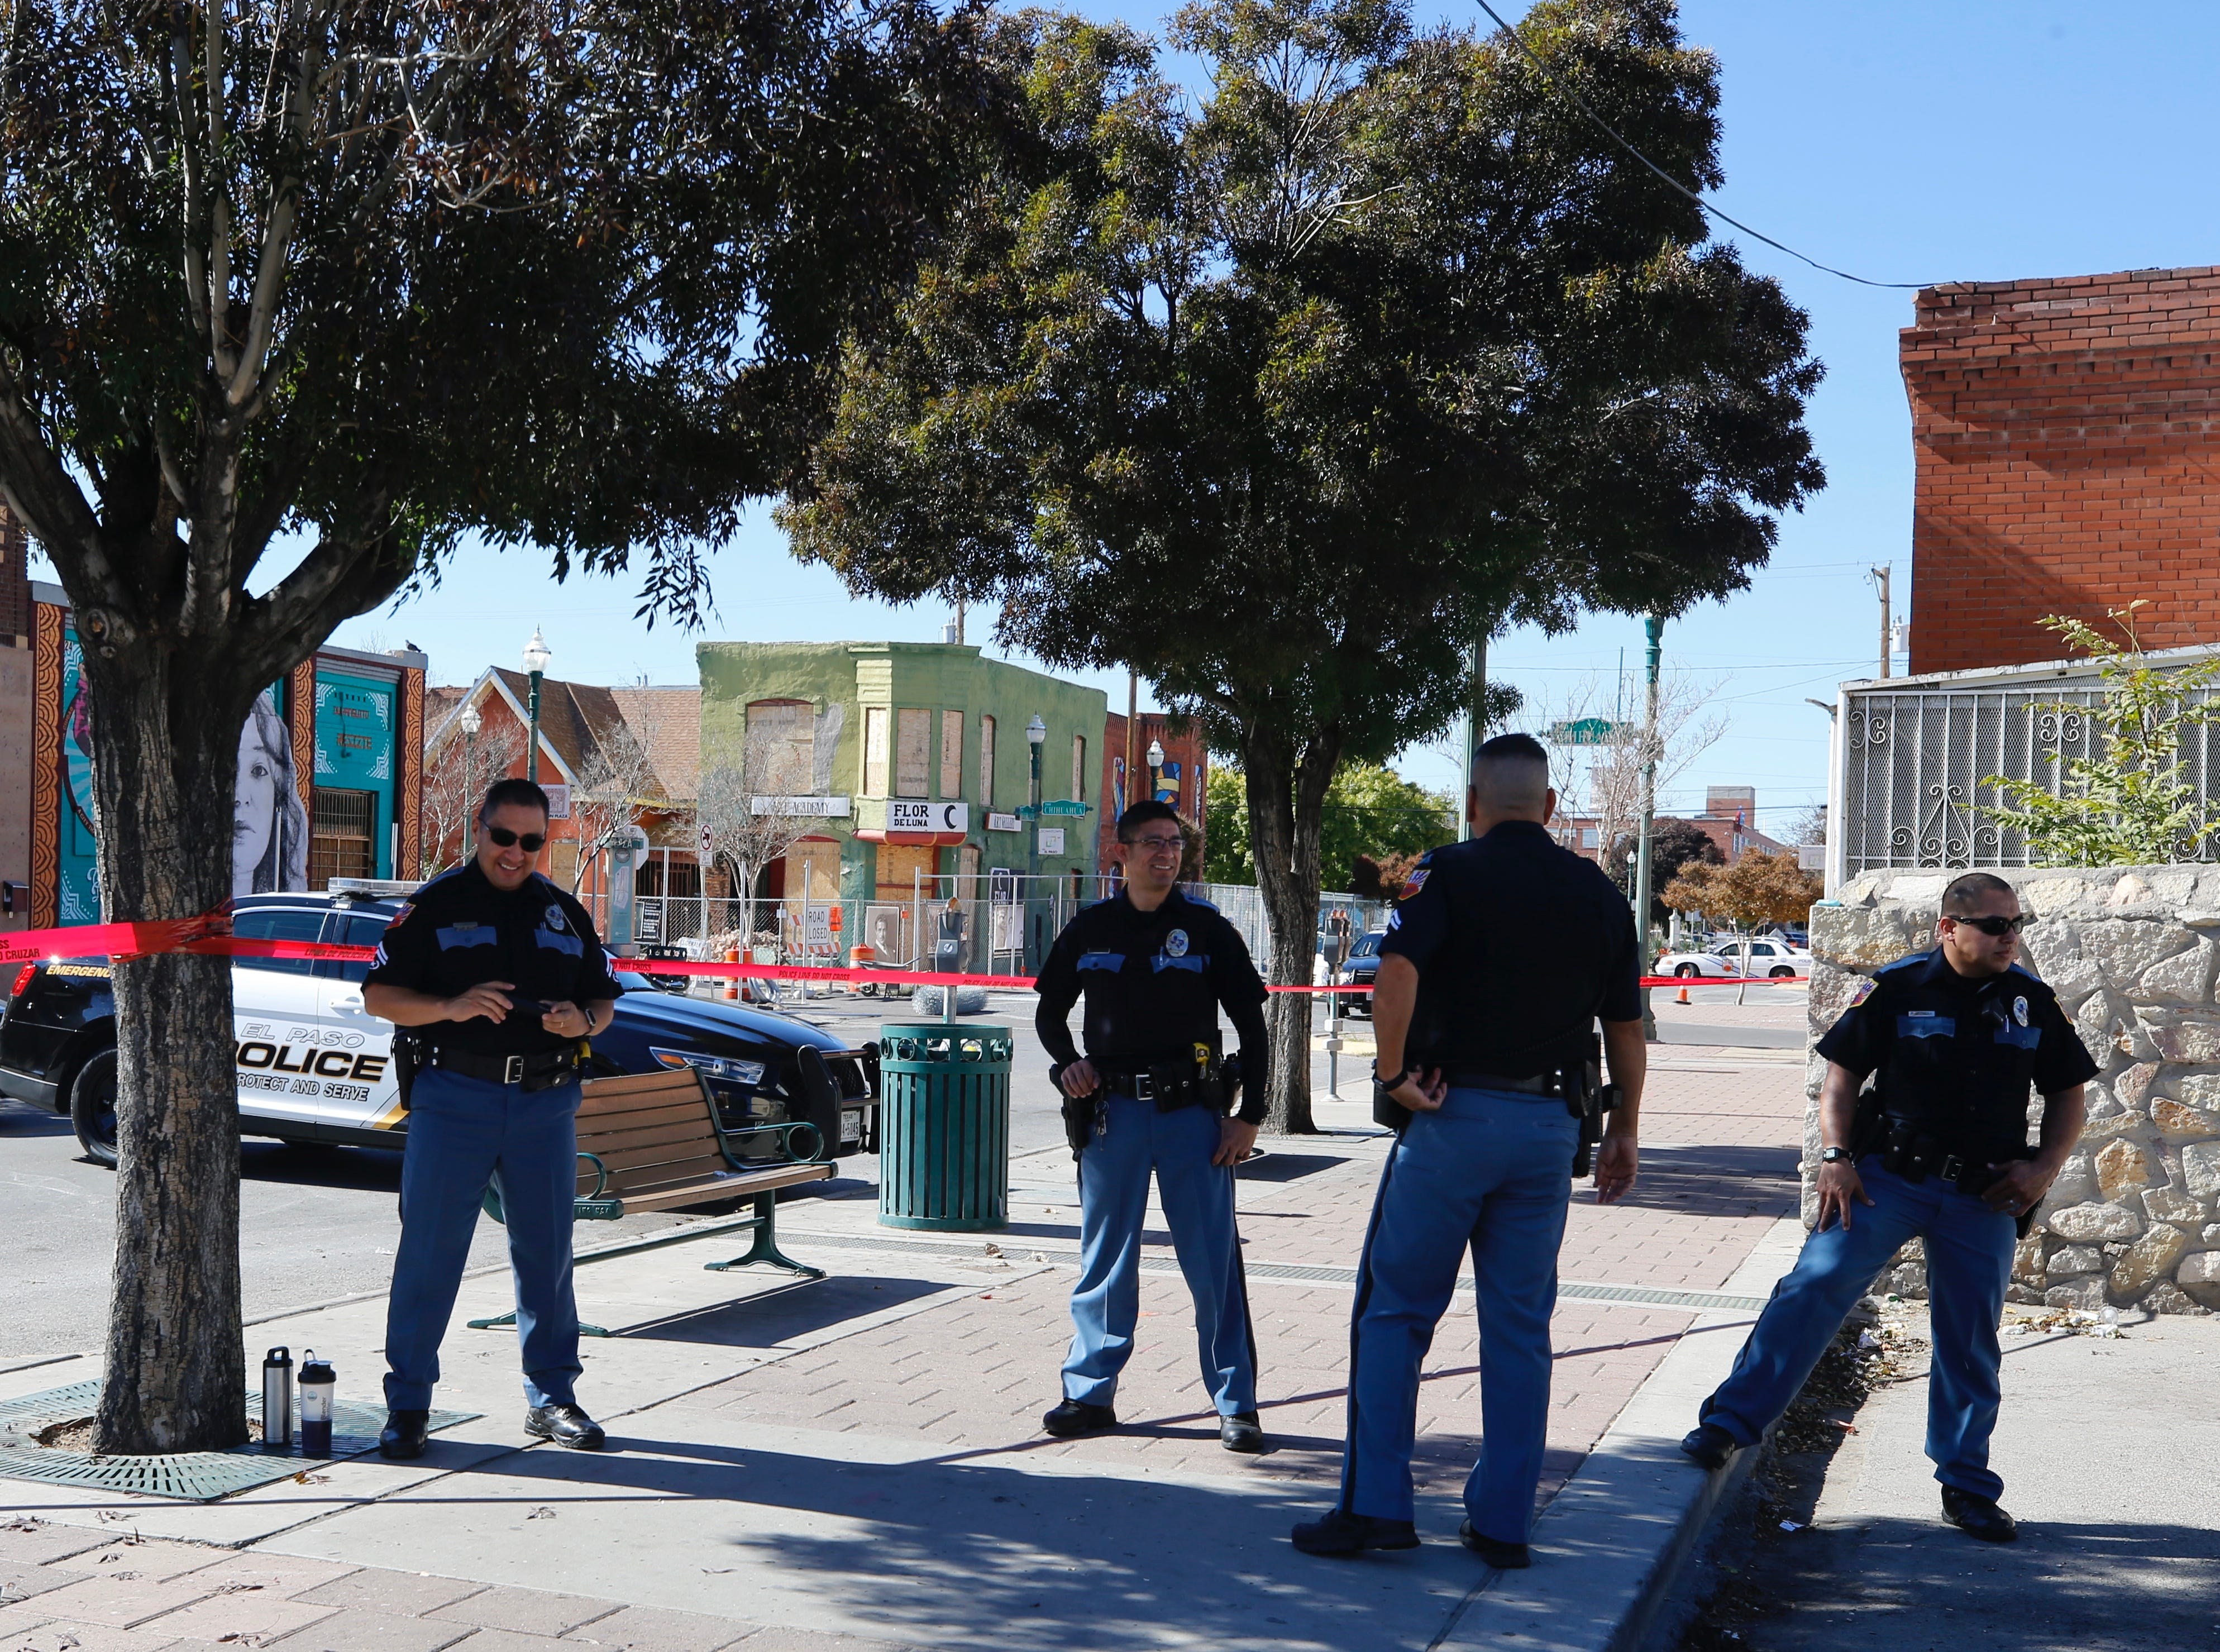 Police stand guard Wednesday as a crew installs more secure fencing around the planned future site of the multipurpose Downtown arena in Duranguito. An archaeological study will be conducted in the area.